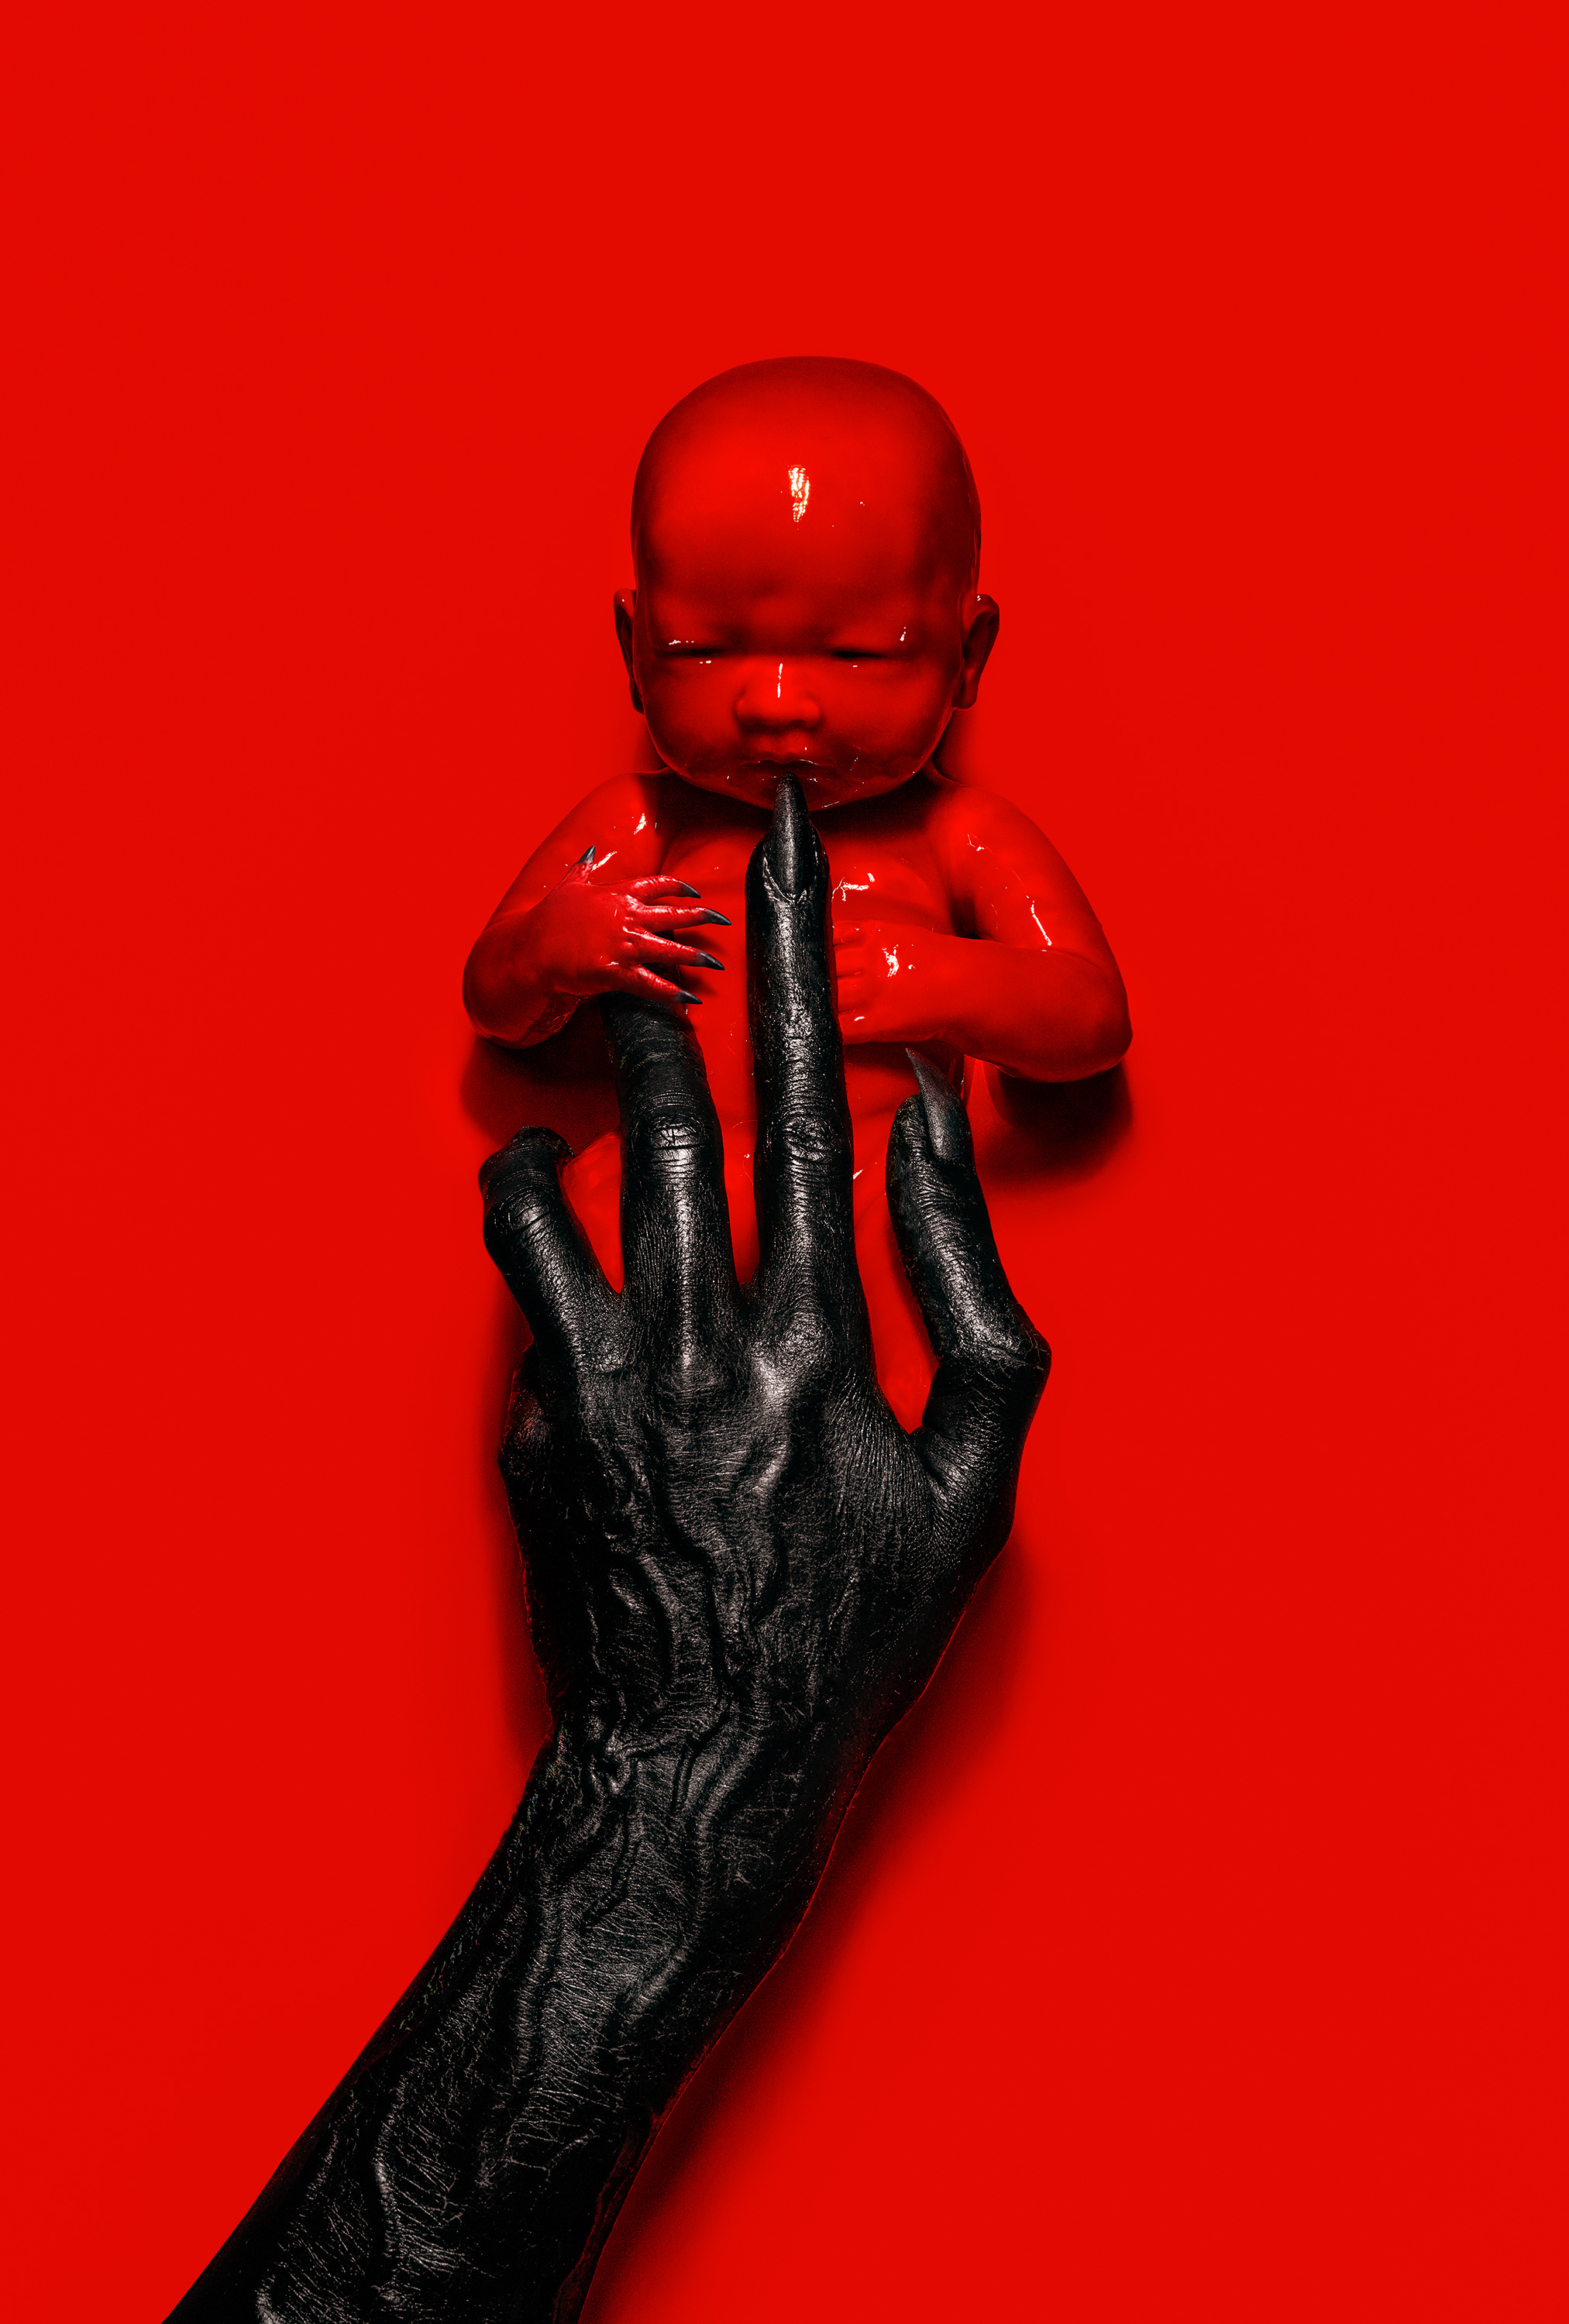 Image Media for AHS: Apocalypse - Red Baby